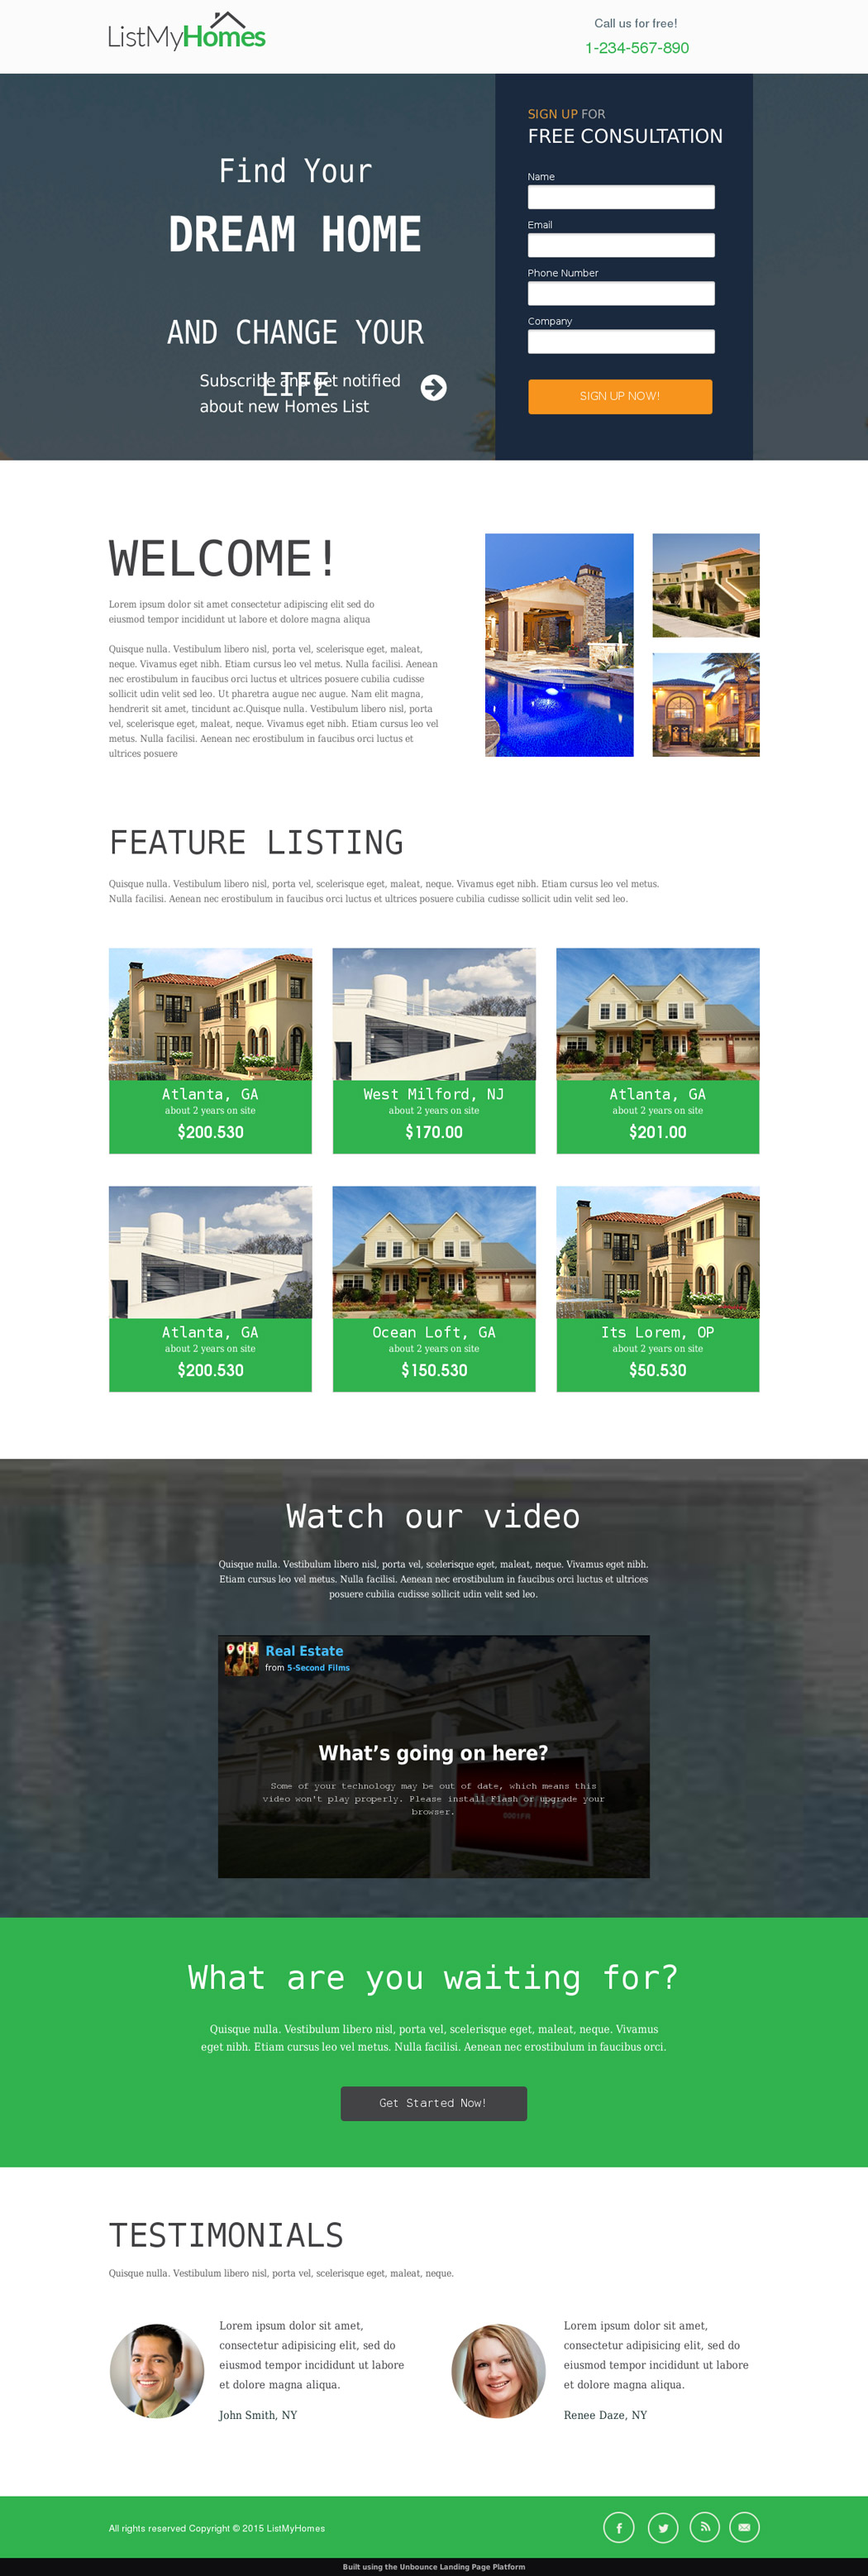 real estate landing page templates for your appraisal homes